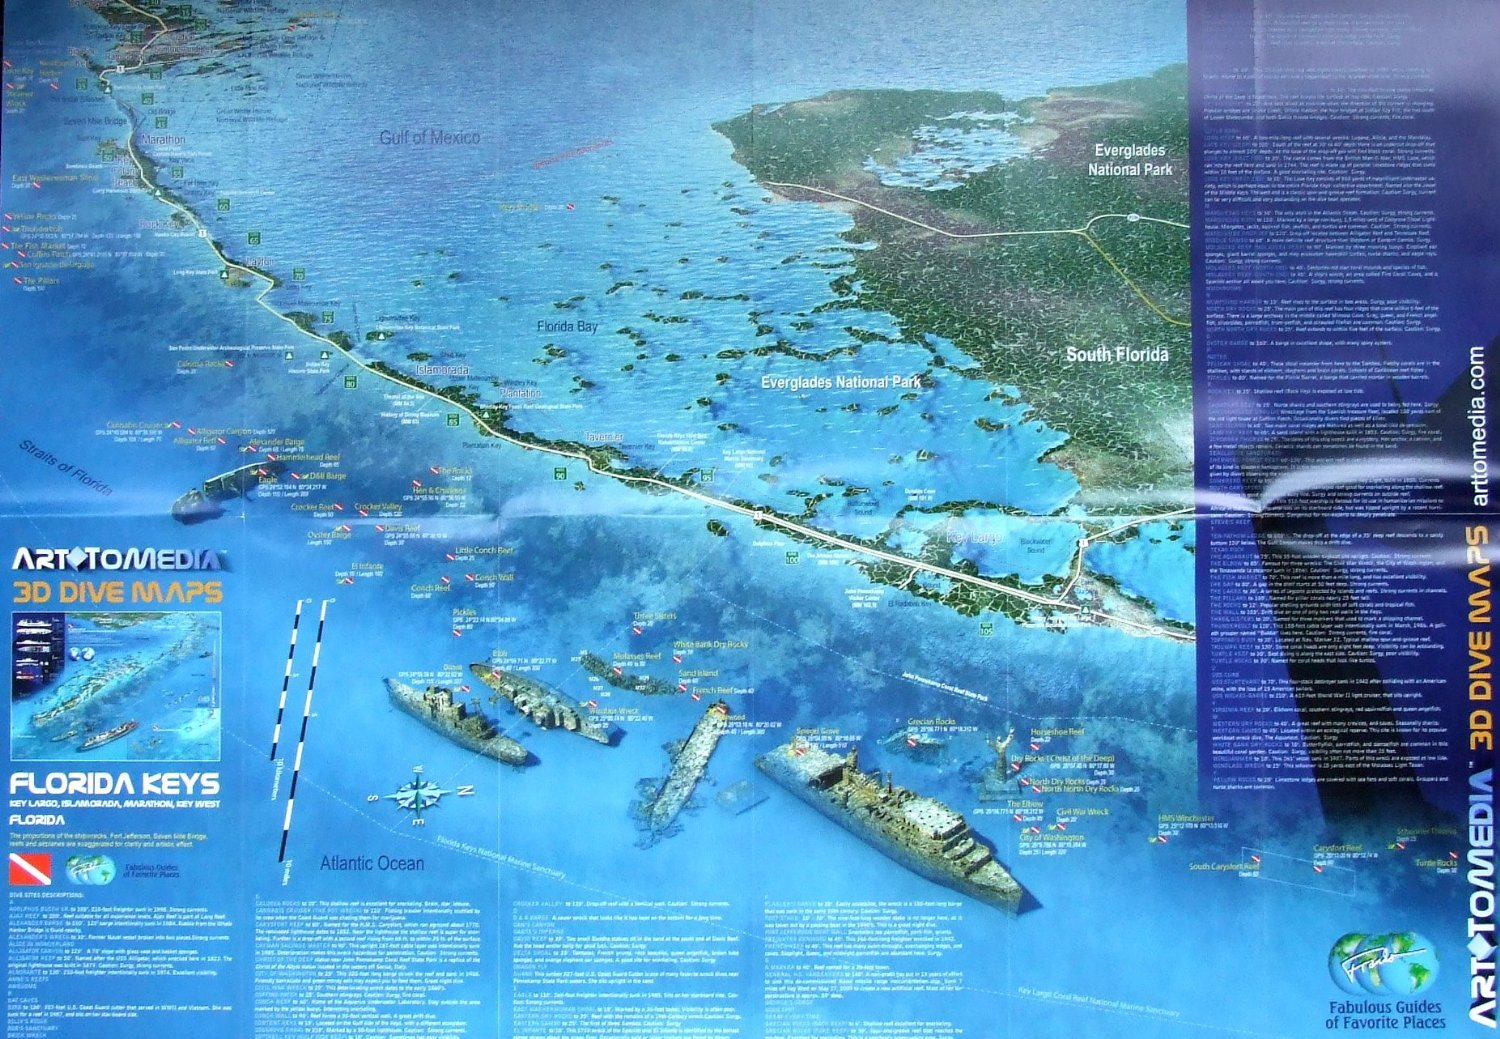 Map Florida Keys.Florida Keys 3d Dive Maps Waterproof Map Art To Media